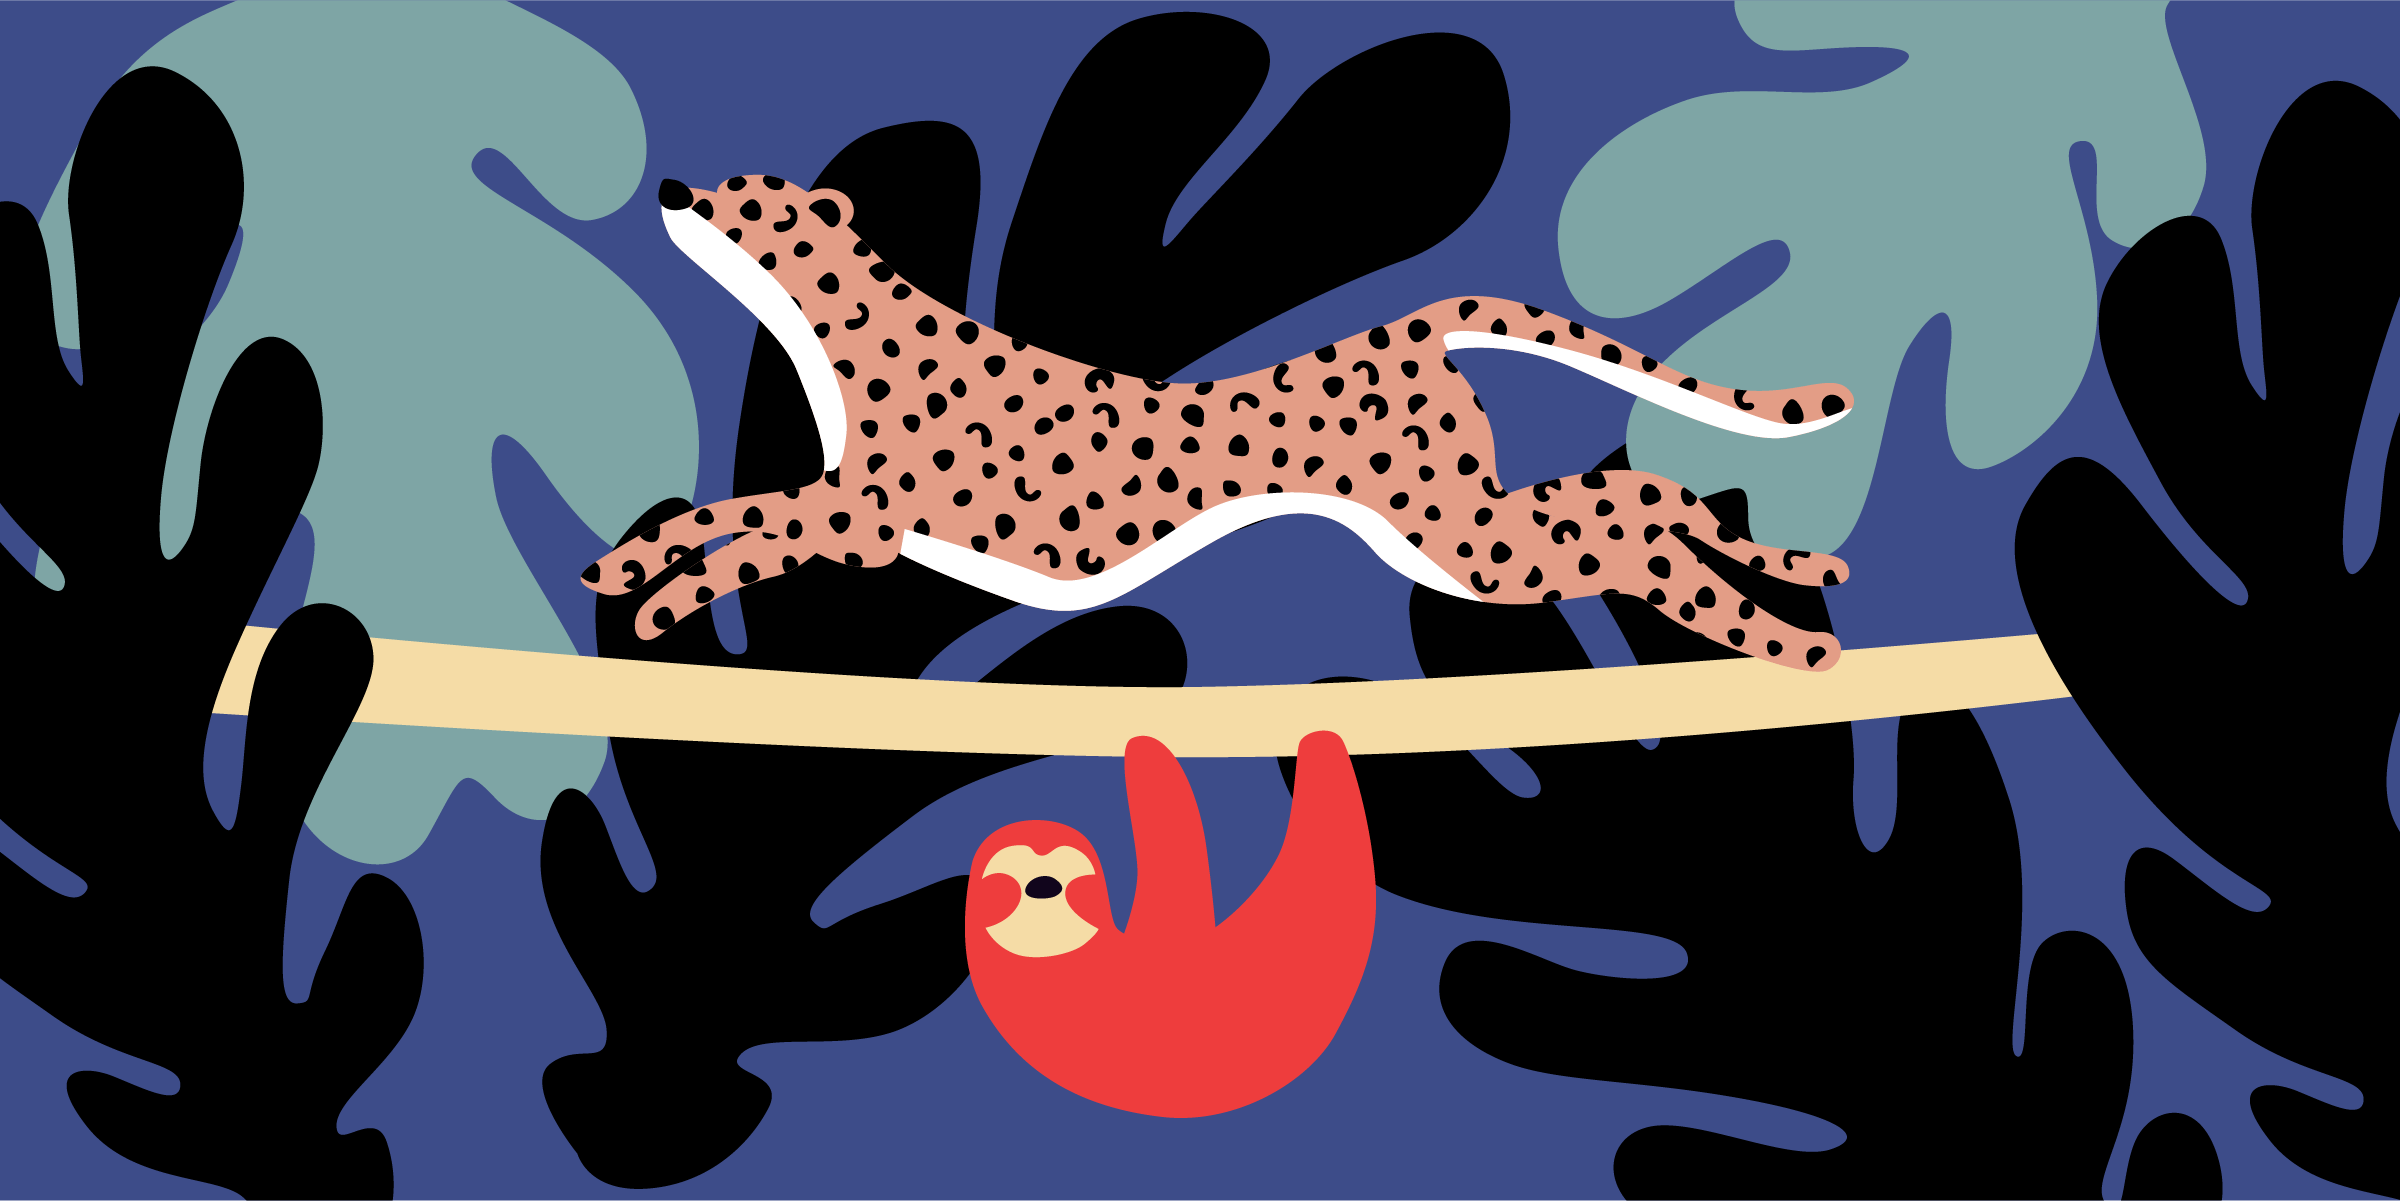 An illustrated sloth and cheetah. The cheetah is on top of a branch, running with energy. The sloth is hanging from the branch. The picture is a metaphor of mismatched libidos. The high libido partner is the cheetah, the other the sloth.